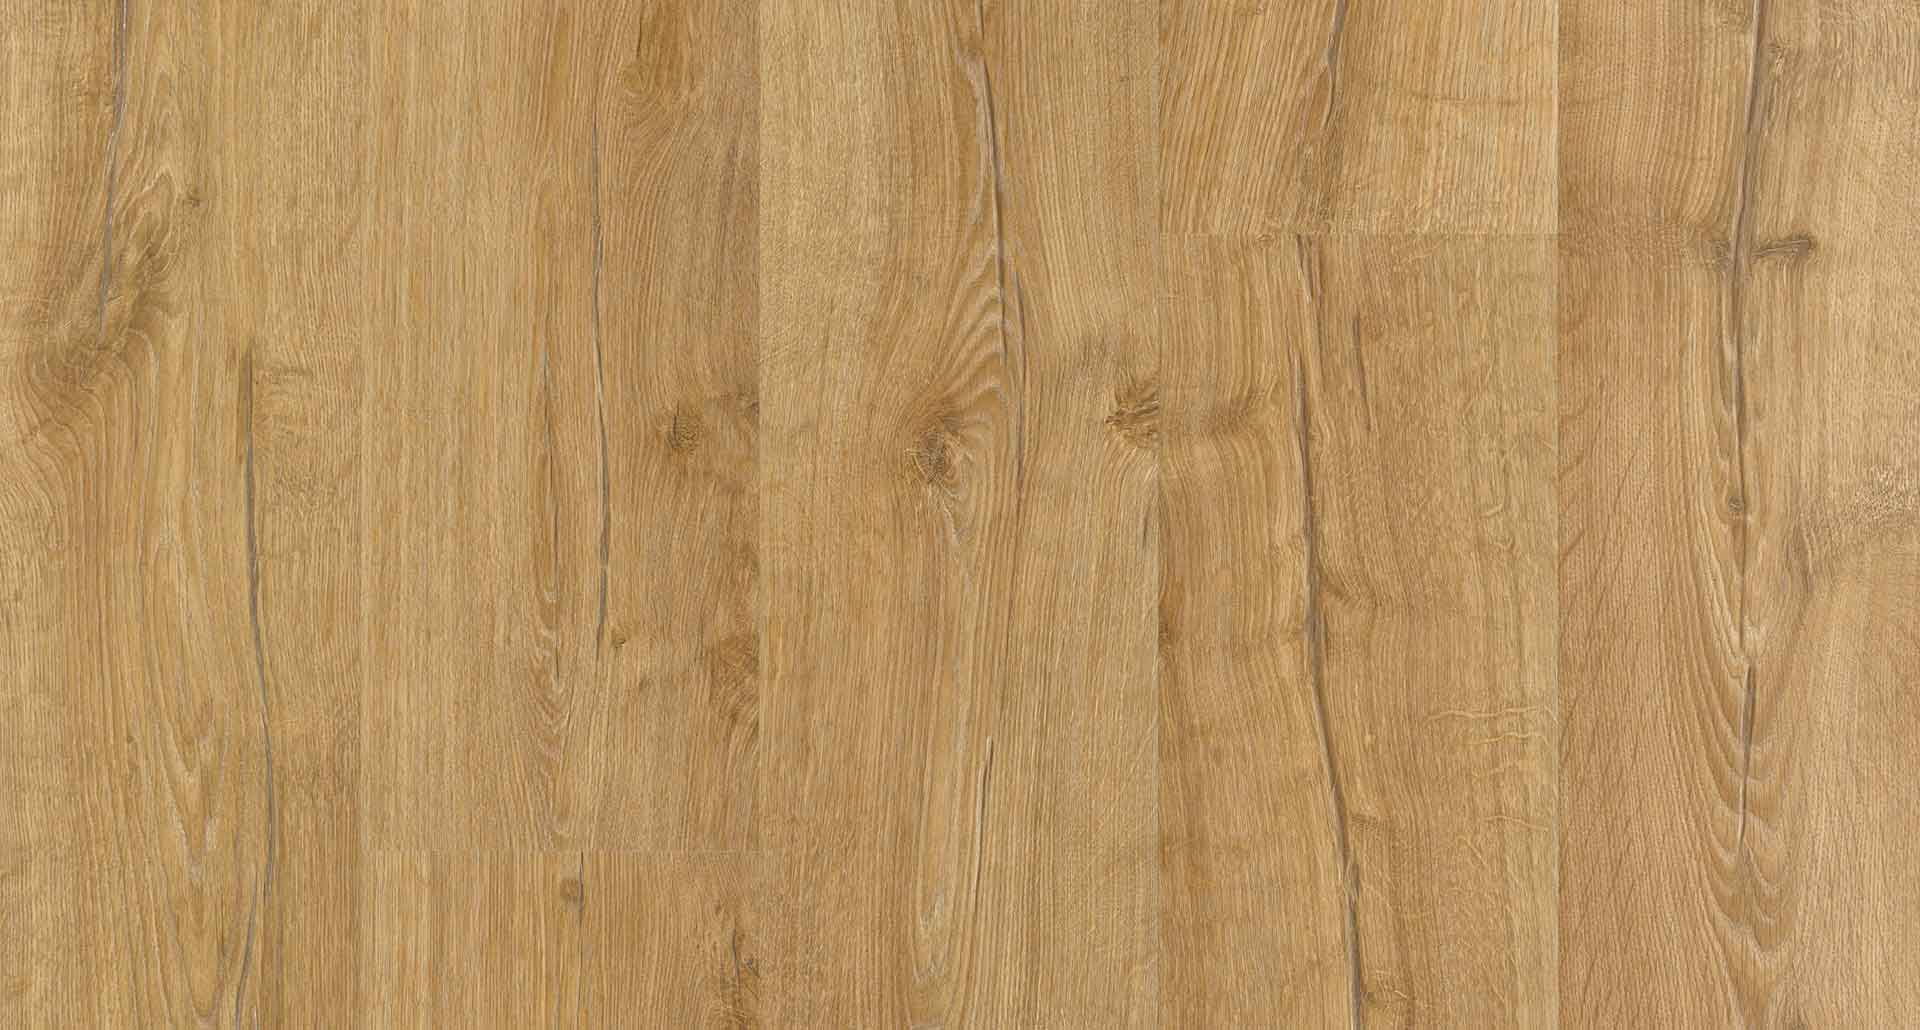 Marigold Oak Natural Laminate Floor With Wear And Spill Protection Golden Oak Wood Wood Laminate Flooring Waterproof Laminate Flooring Oak Laminate